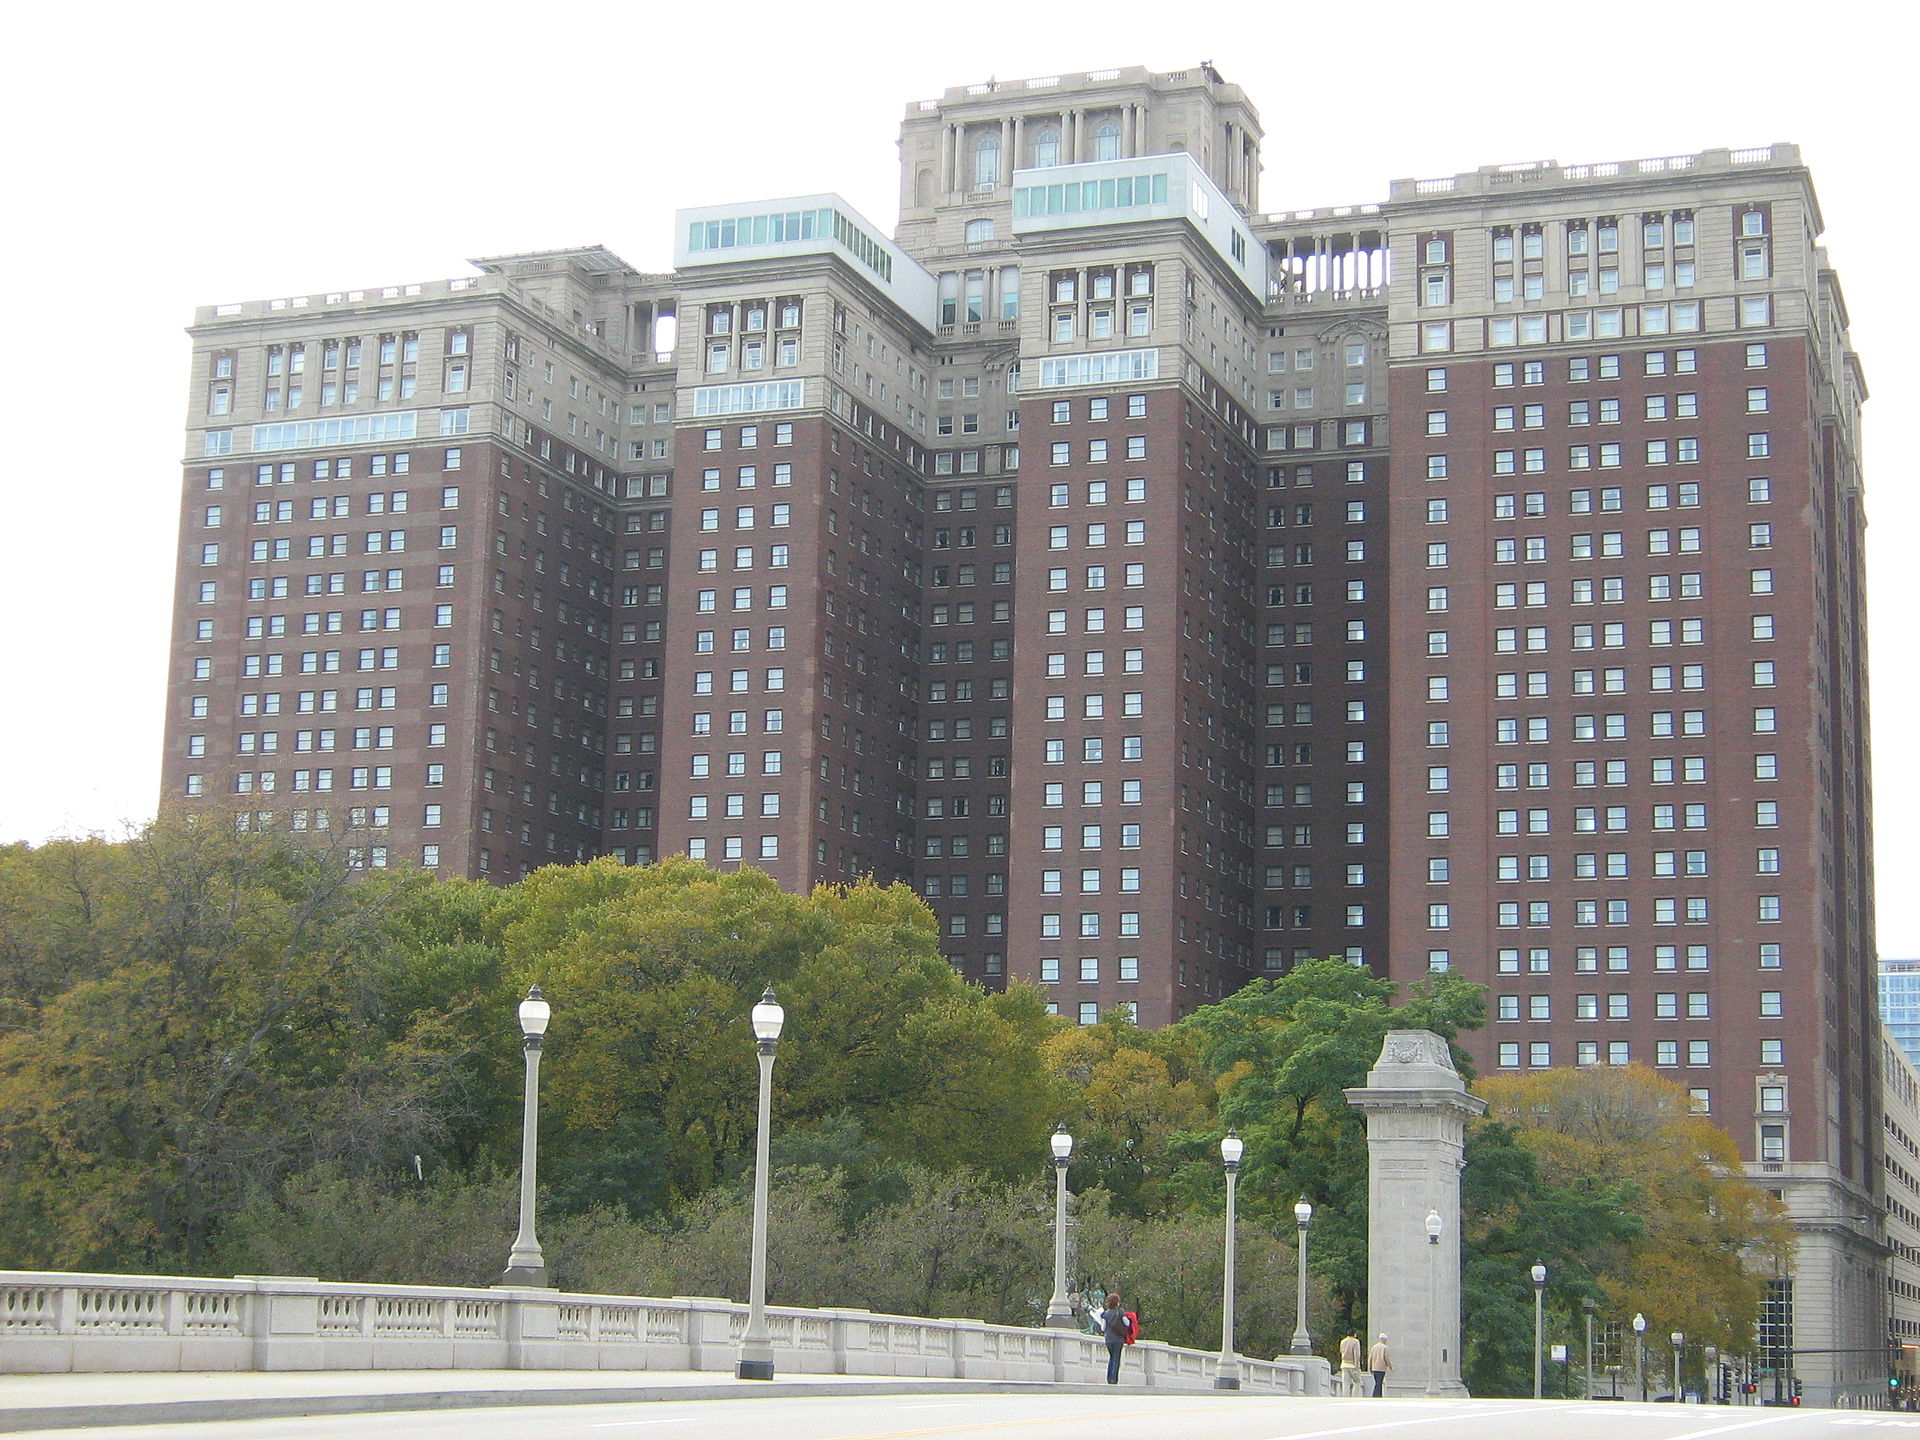 Hotel Hilton Chicago O Hare Airport Hotel Distance To Canadair Terminal